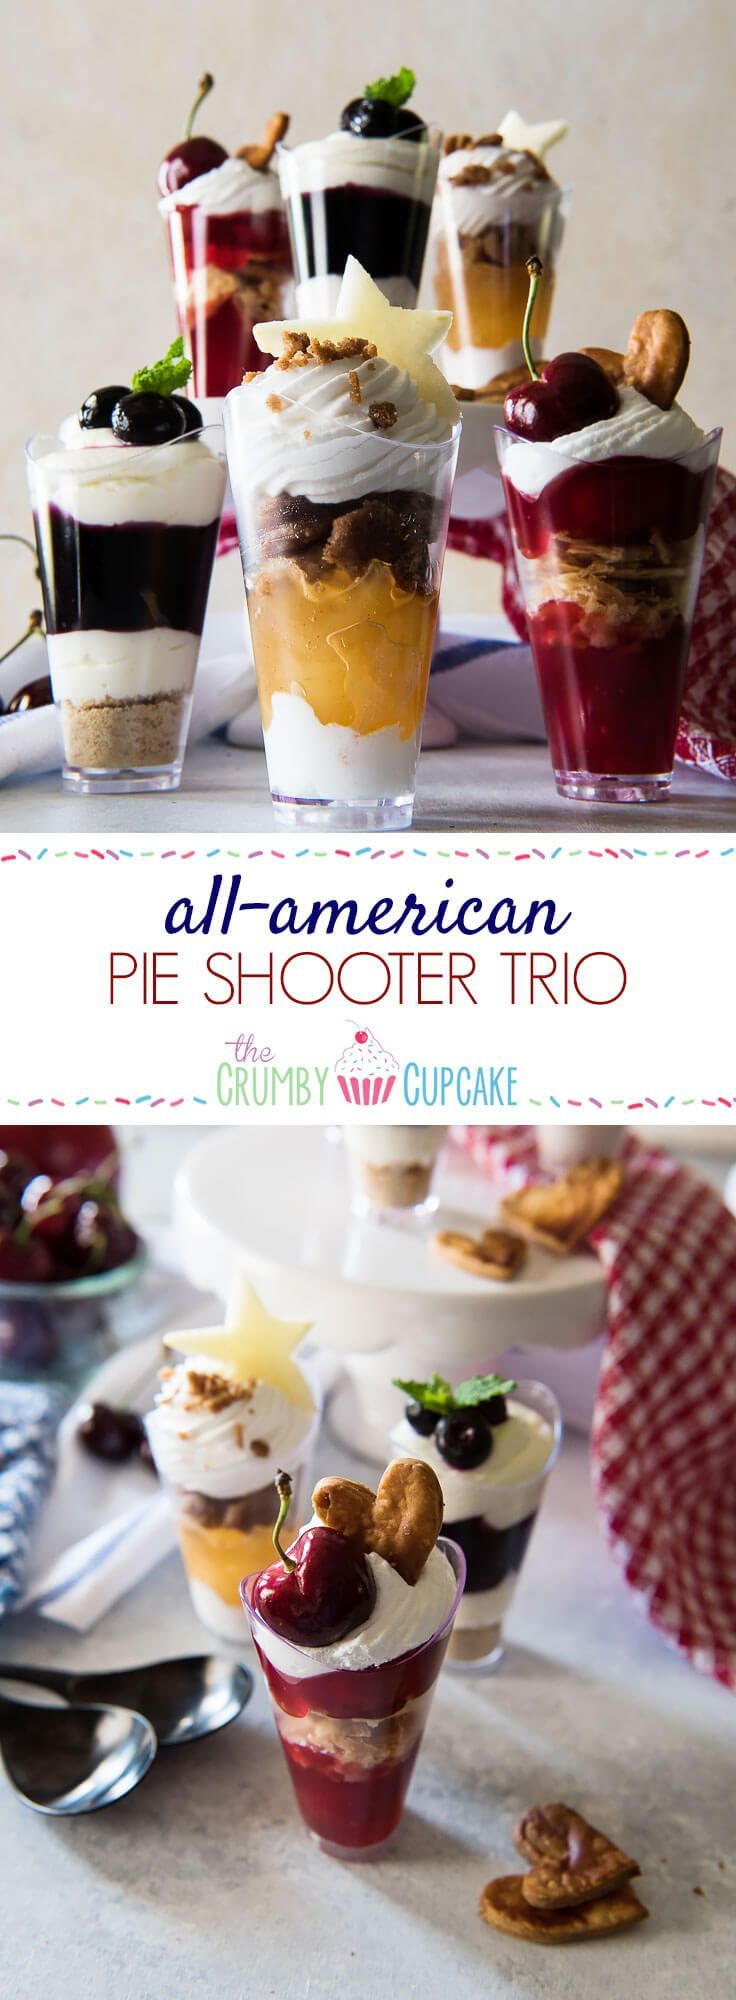 Celebrate your Independence - from plates! This tastyAll-American Pie Shooter Trio has all your favorite patriotic flavors covered - apple streusel, blueberry cheesecake, and classic cherry. And the best part? All you need is a spoon to enjoy them, making them perfect for every summer party! #SundaySupper